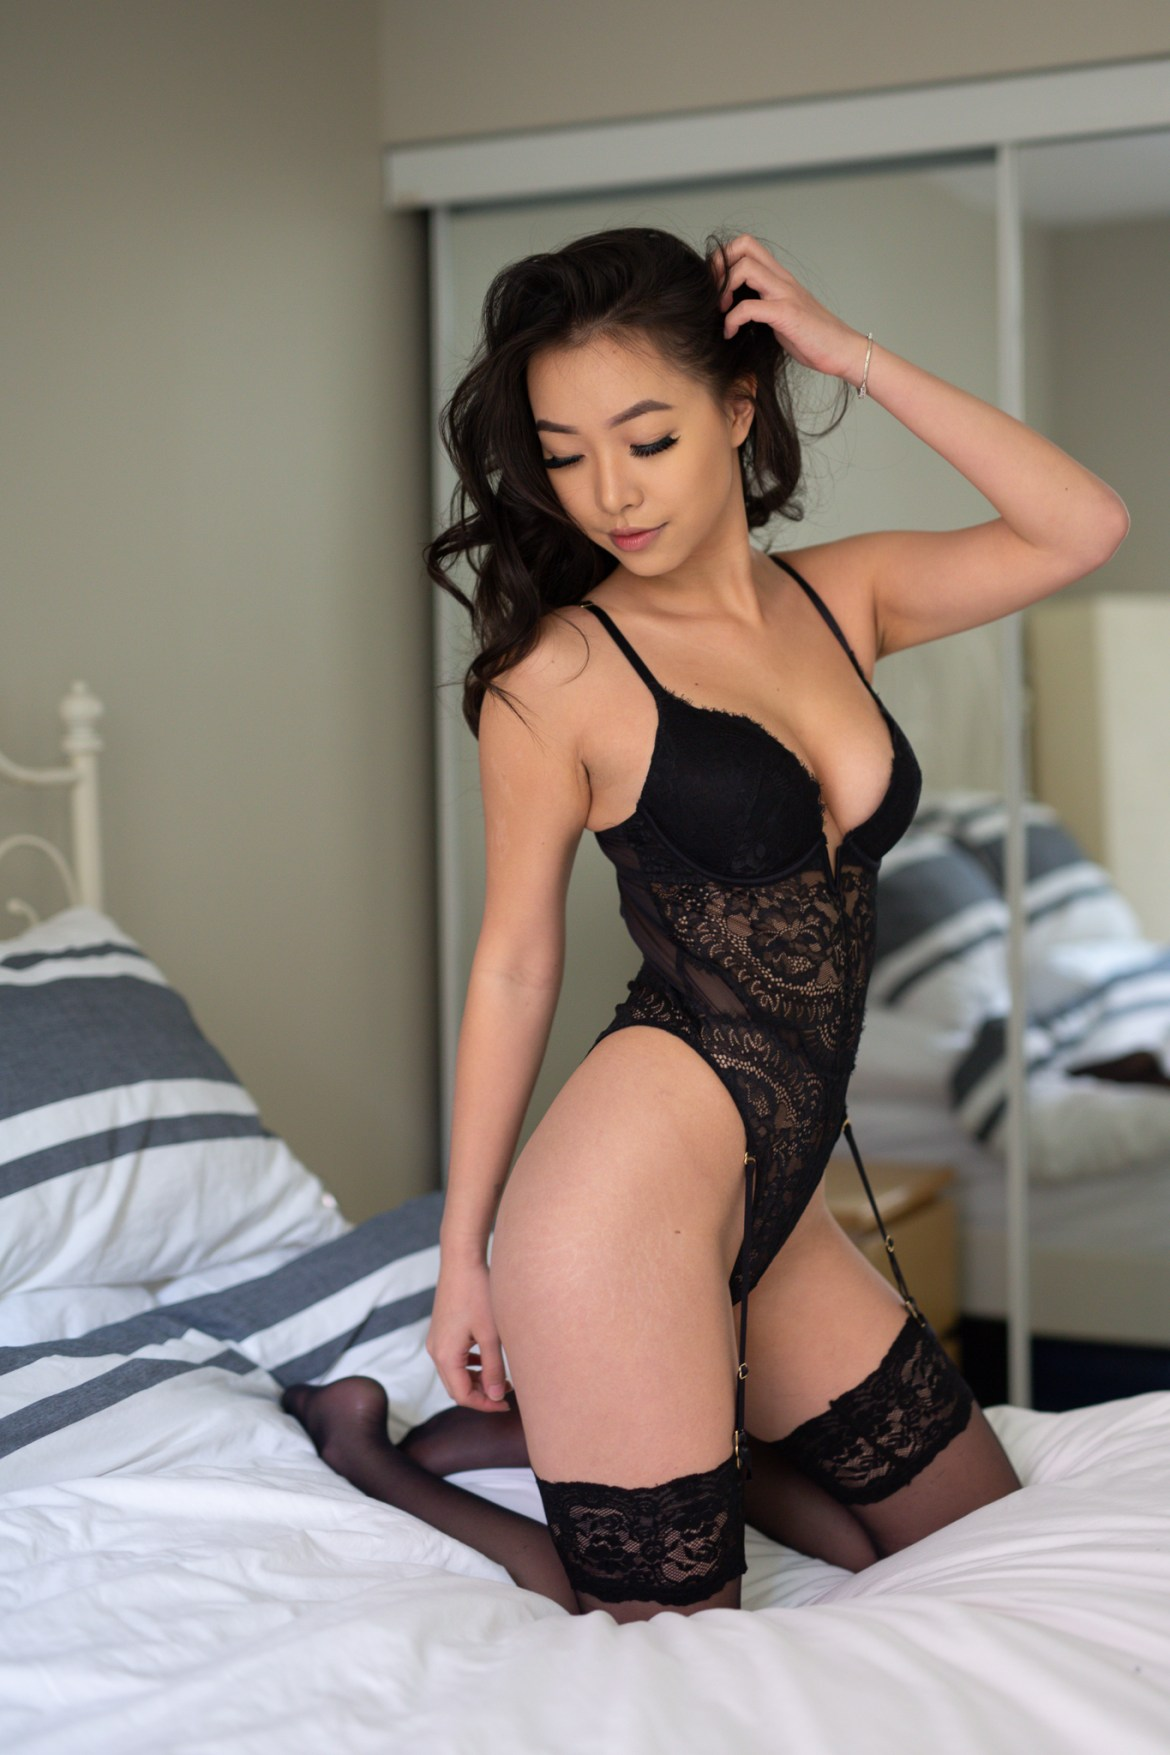 boudoir photographer, photoshoot, bed, beauty, bodysuit, mirror, before, raw image